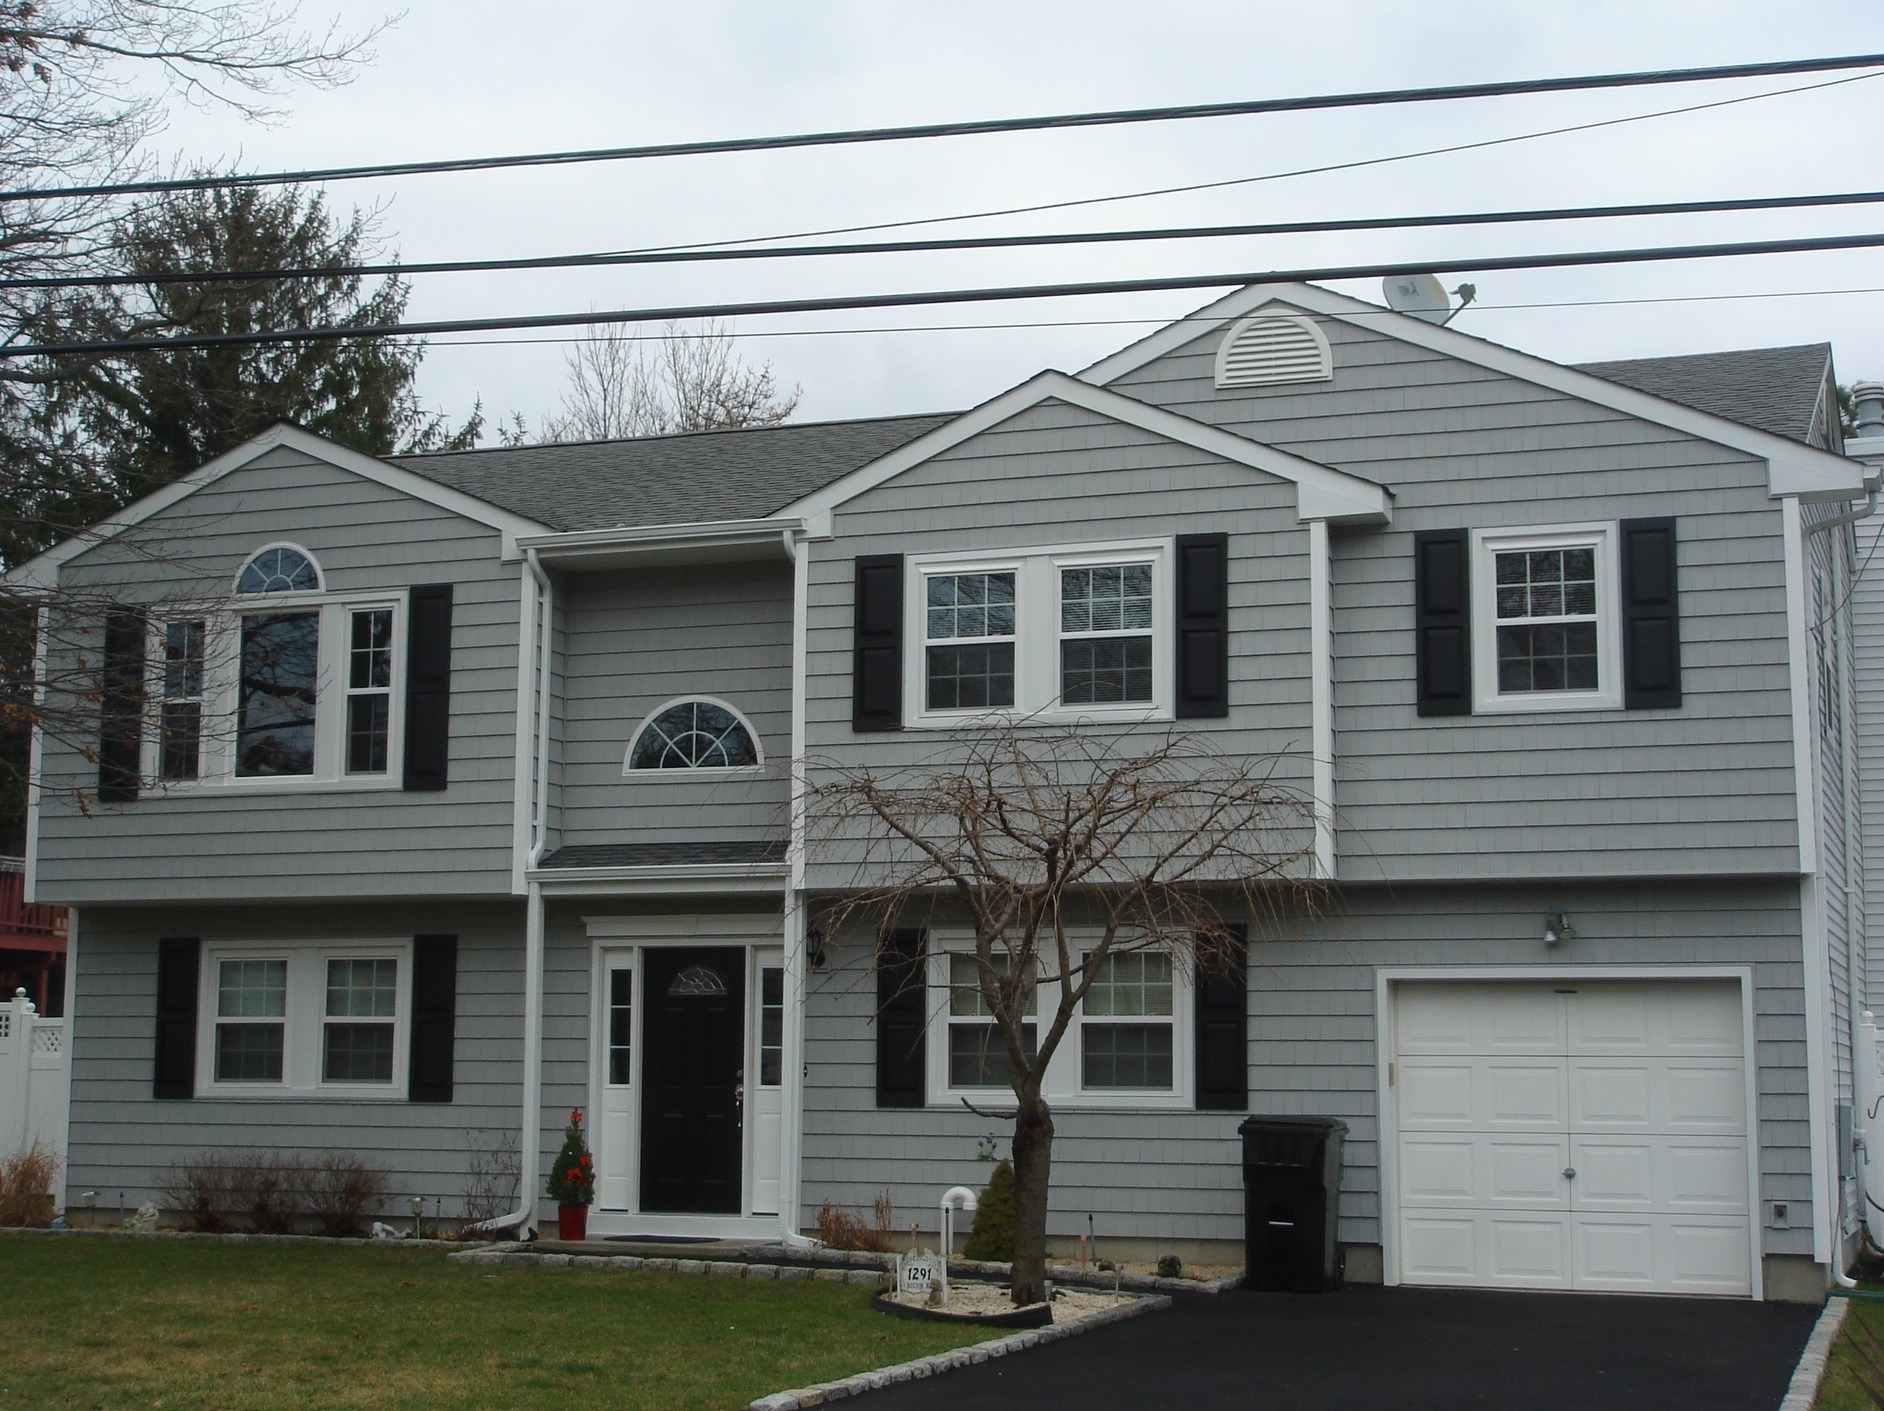 Siding Amp Windows Replaced In Bay Shore Alpha Windows